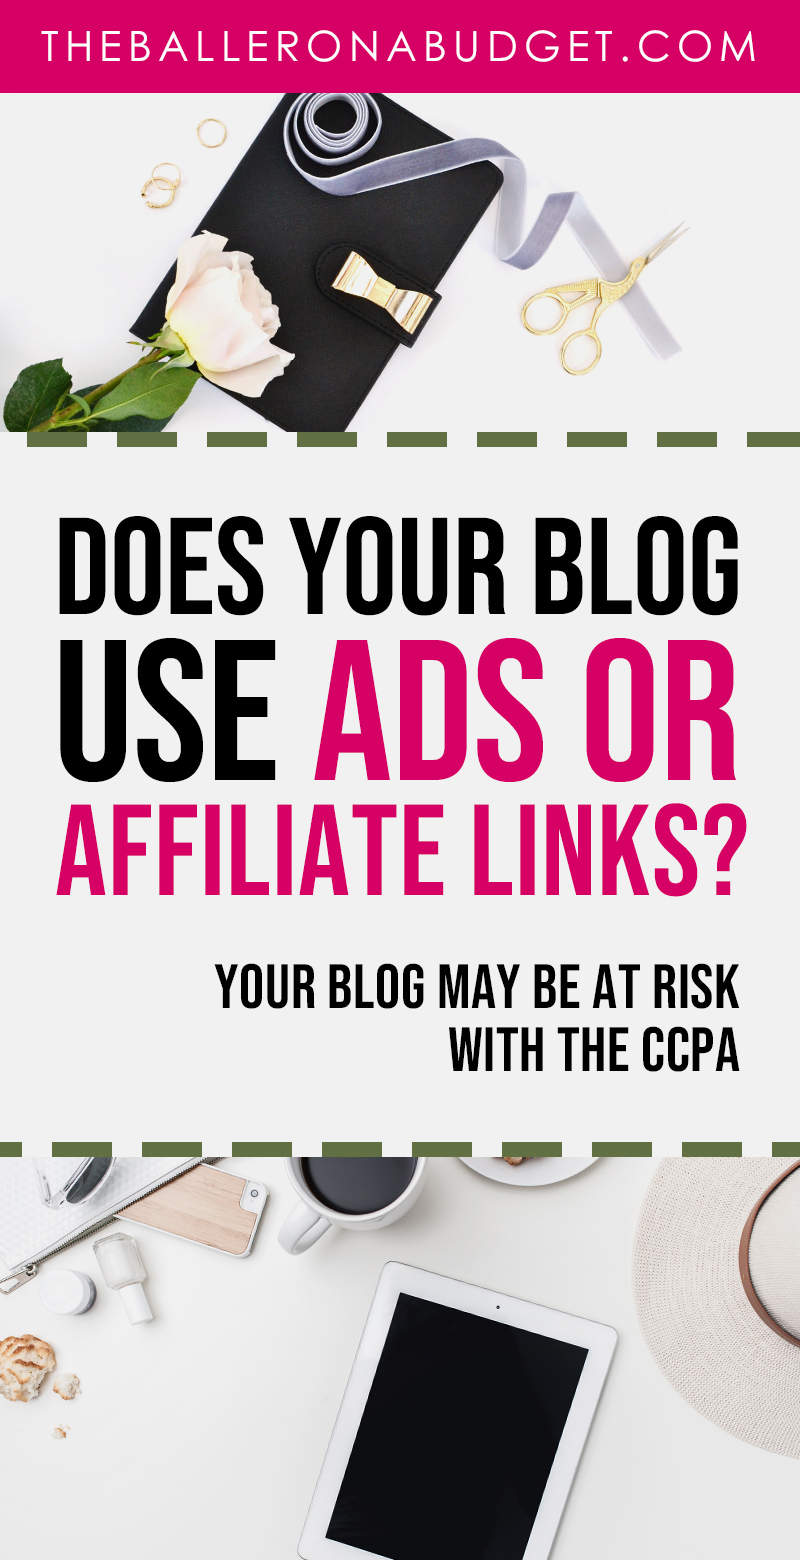 Does your blog use ads or affiliate links to make money? If so, your blog may be at risk of an income decrease through the California Consumer Privacy Act, even if your business is not based in California. Here's everything you need to know about the CCPA to comply. - www.theballeronabudget.com